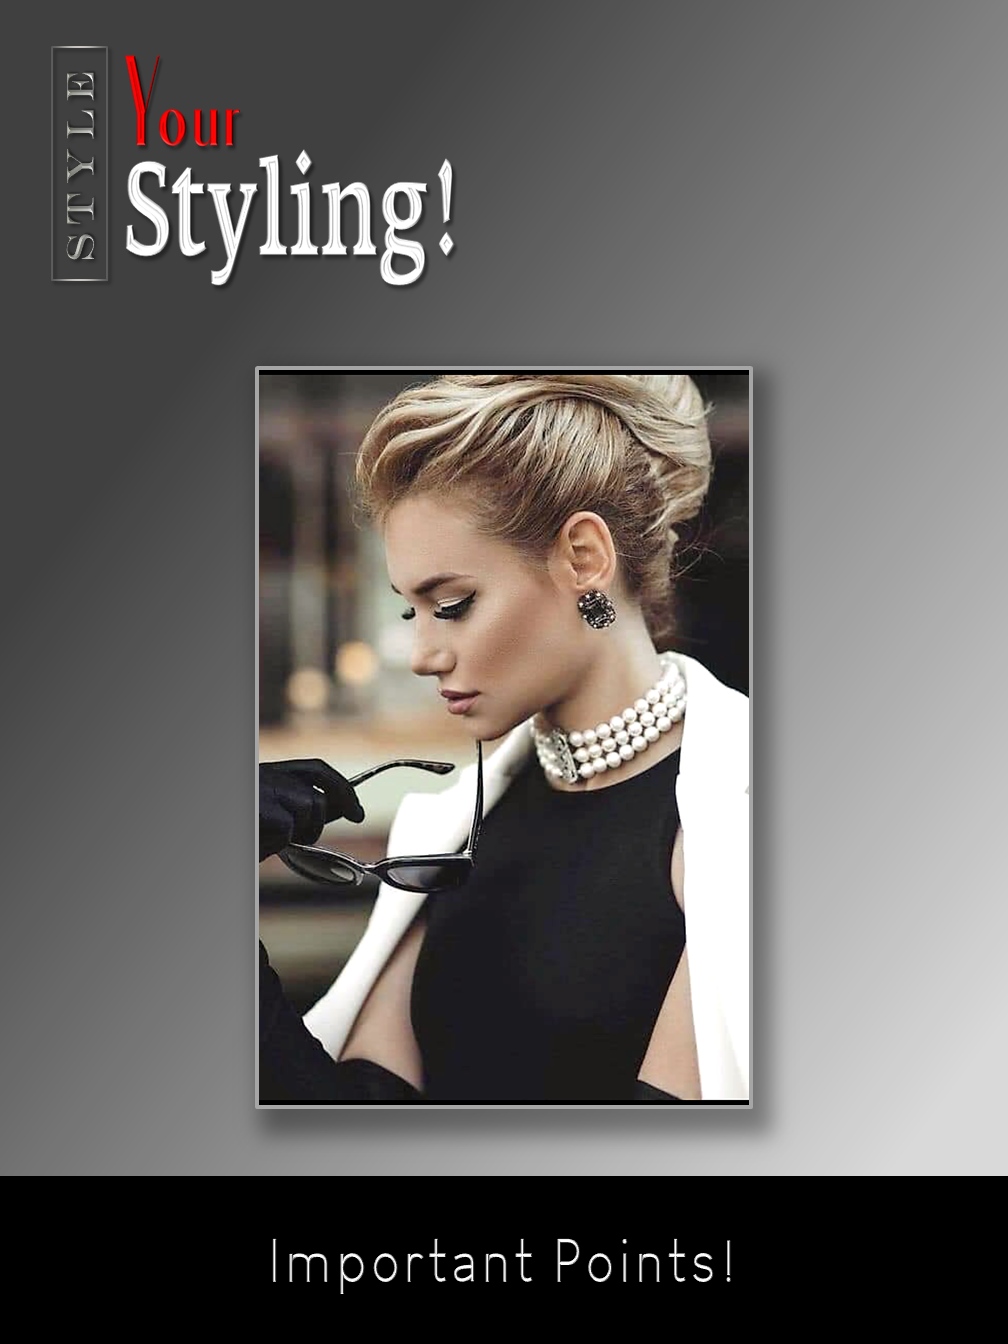 Your Styling